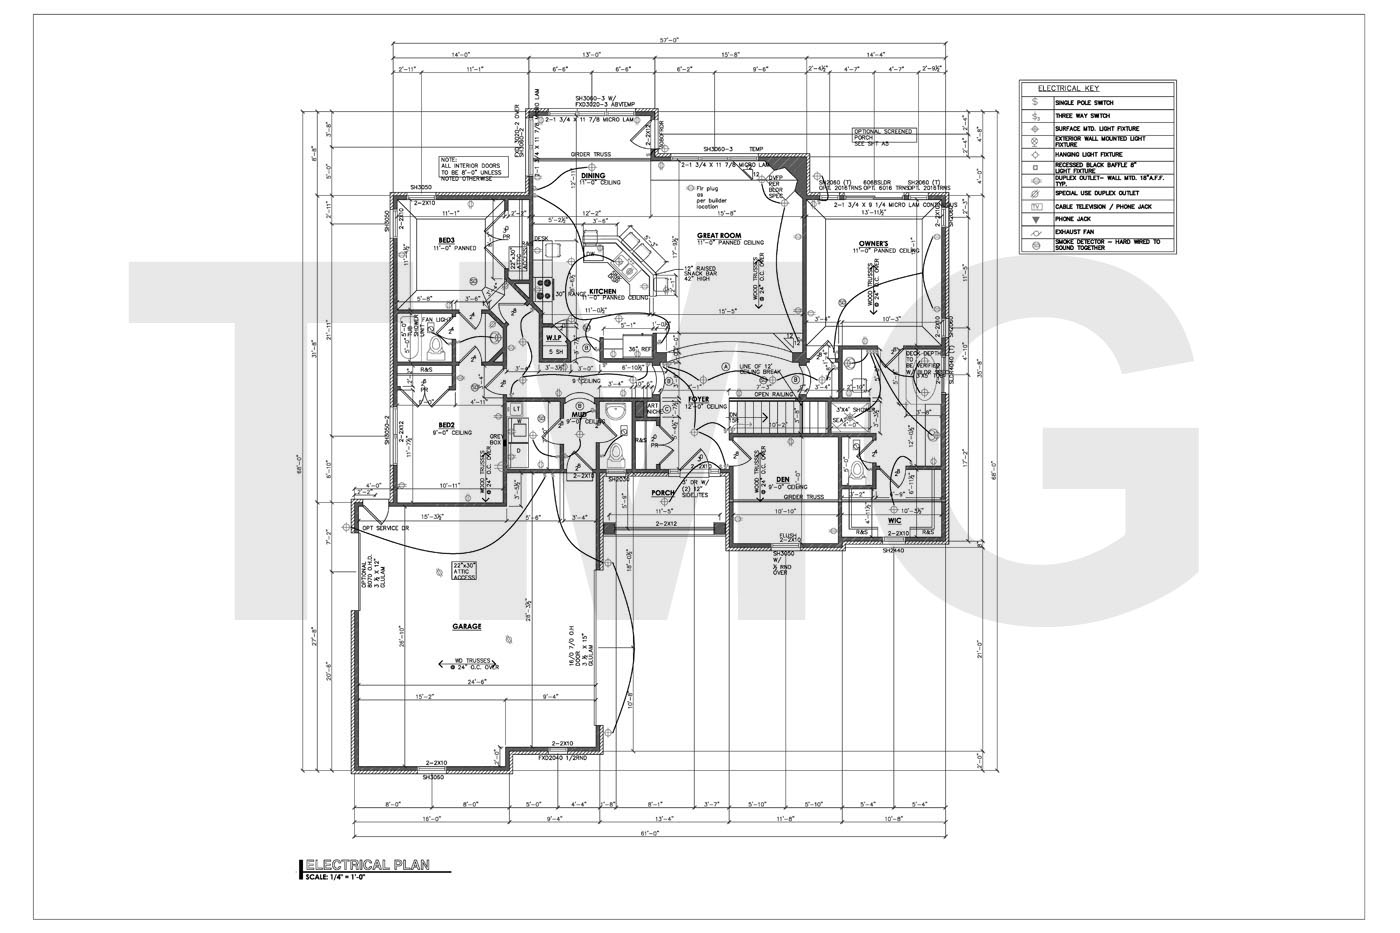 Electrical Drawing For Permit